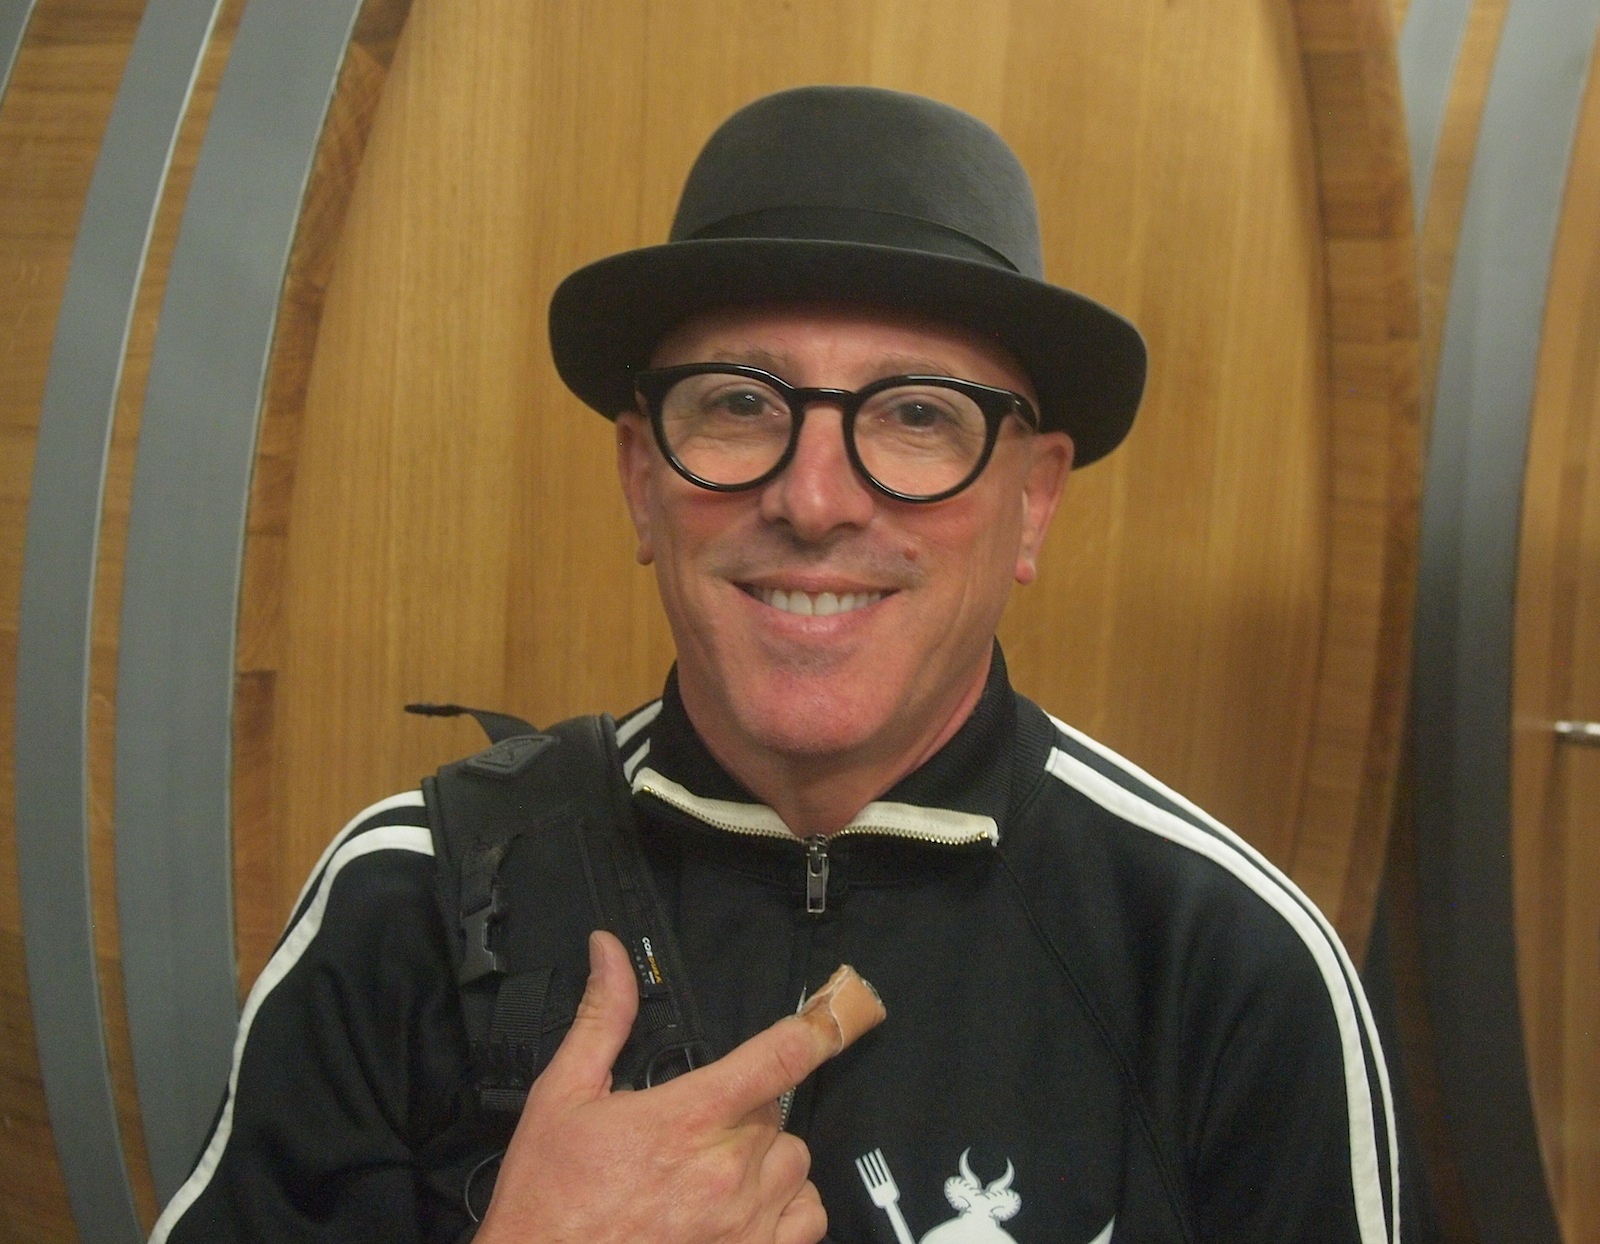 FLX Wine Diary: Day 5 YES, Maynard James Keenan IS on the